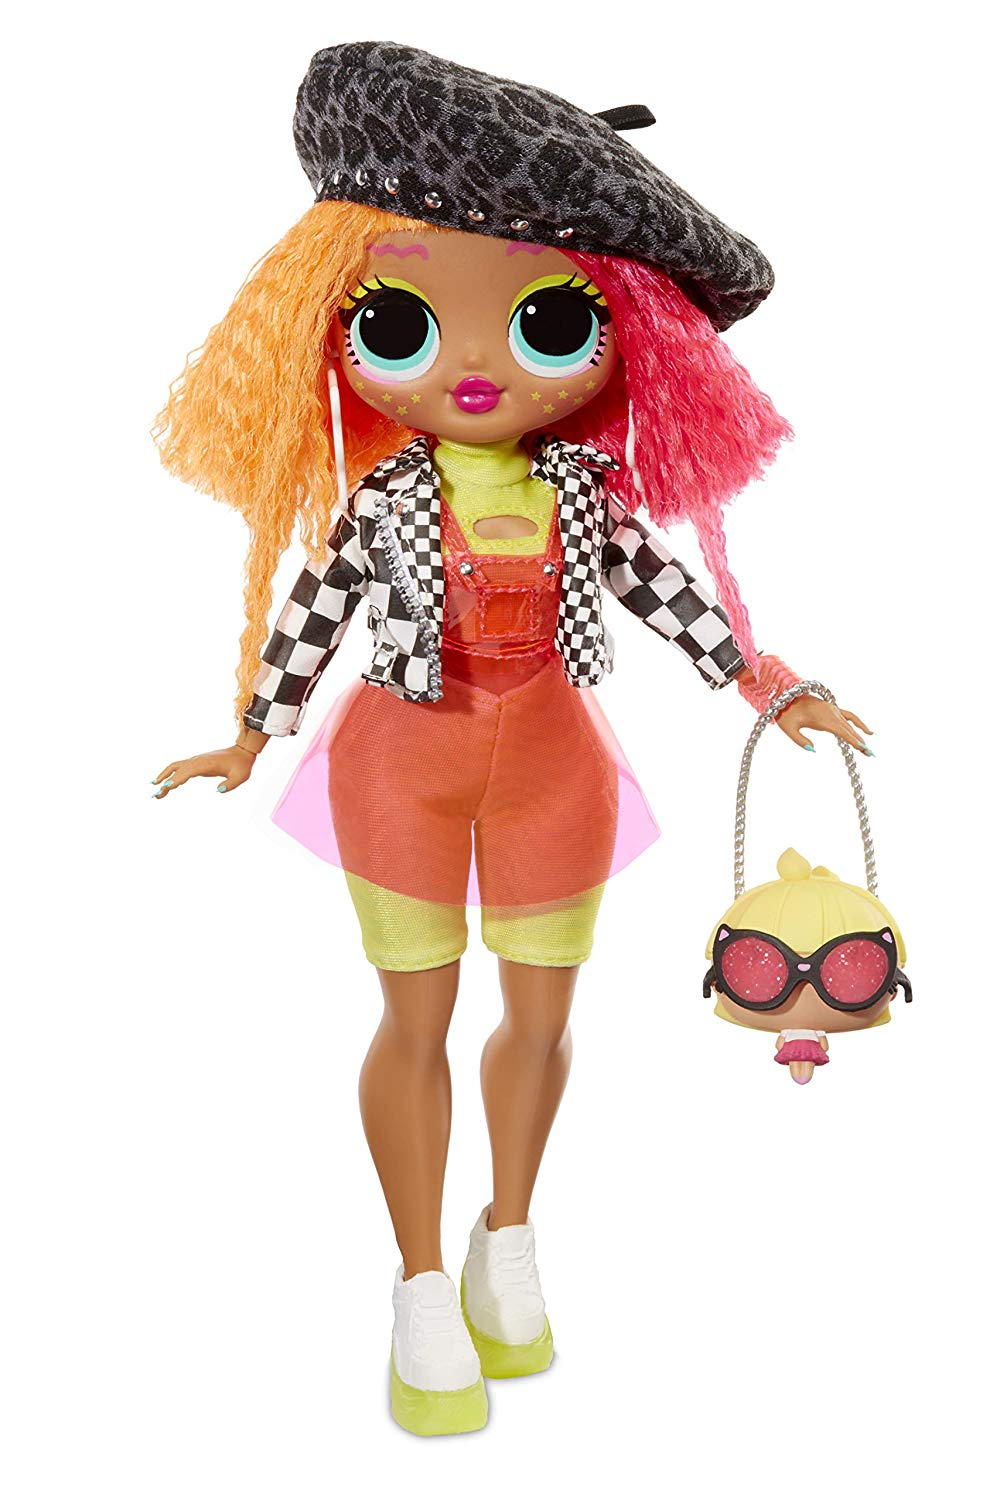 +1 LOL SURPRISE OMG FASHION DOLLS SERIES 1 LOT OF 4 ROYAL BEE SWAG LADY DIVA